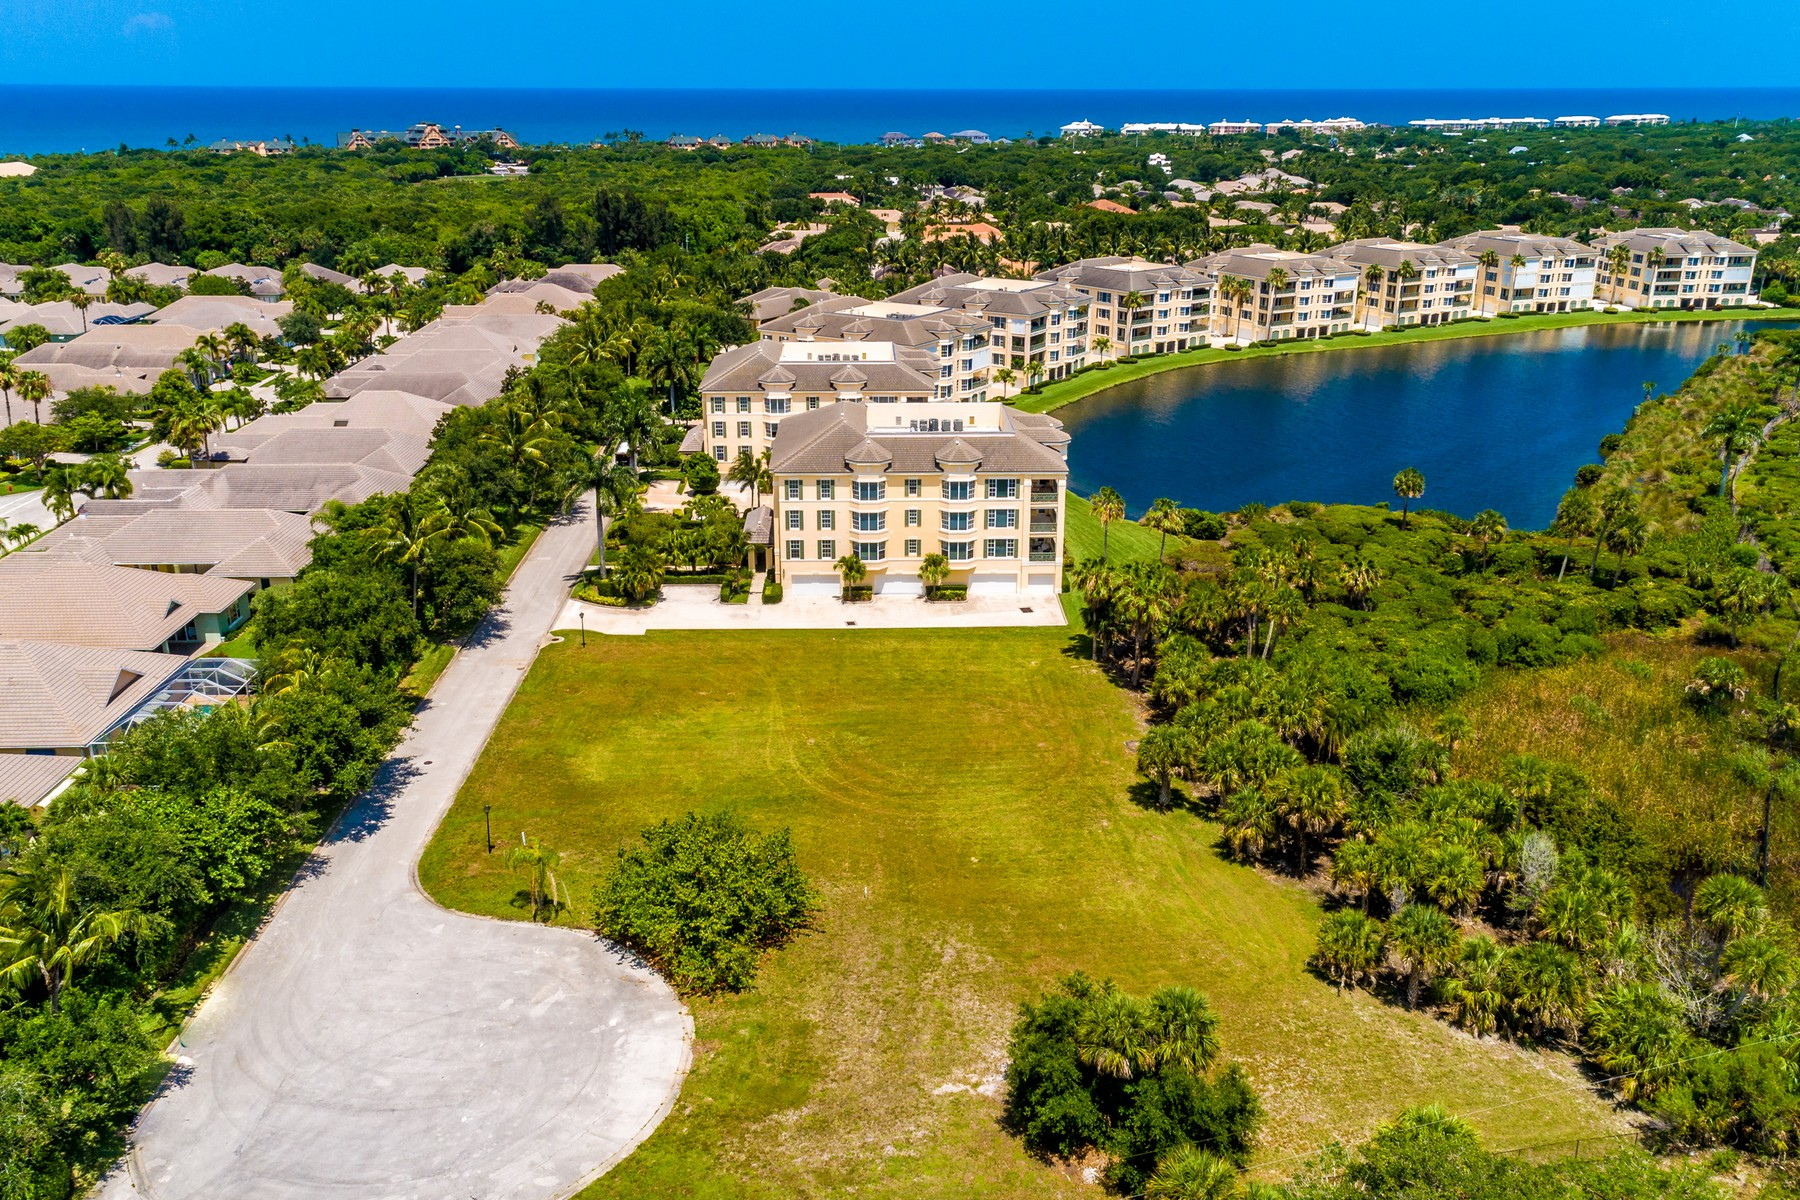 Property for Sale at Spectacular Direct Riverfront Condo Sites 0 Somerset Bay Lane Vero Beach, Florida 32963 United States